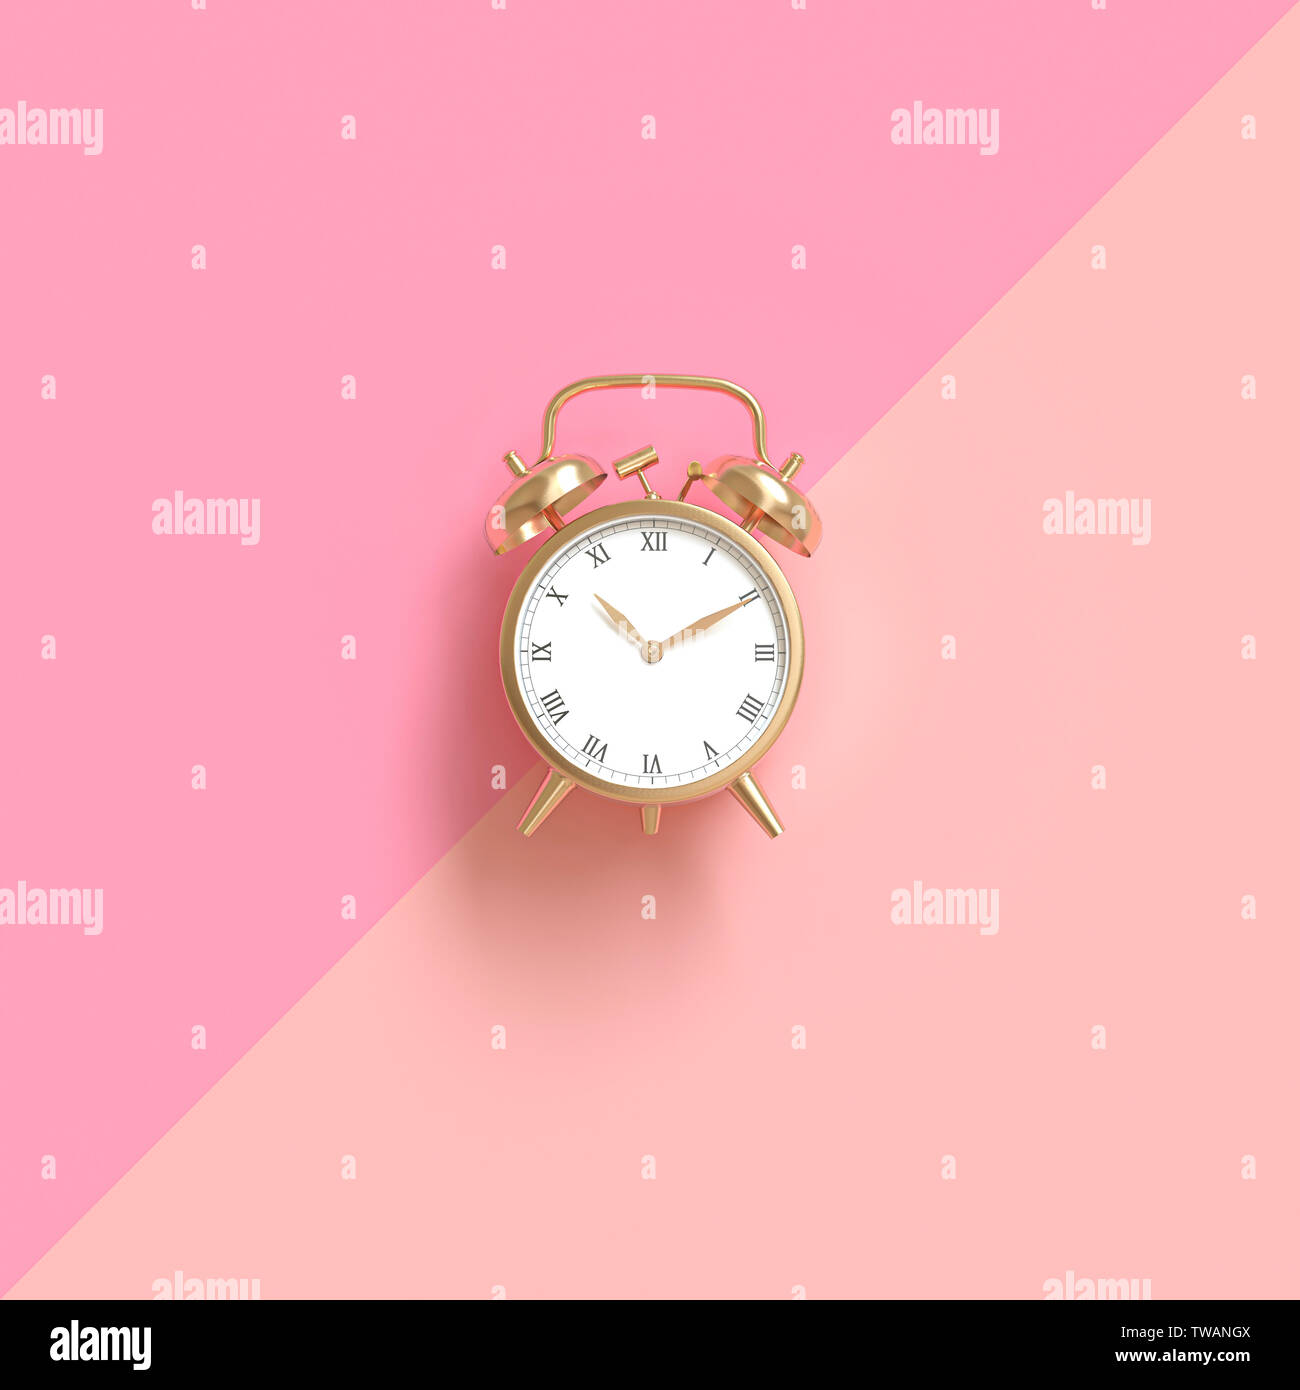 classic gold-colored alarm clock on a two-tone pink background. Flat lay style. 3d image render. - Stock Image